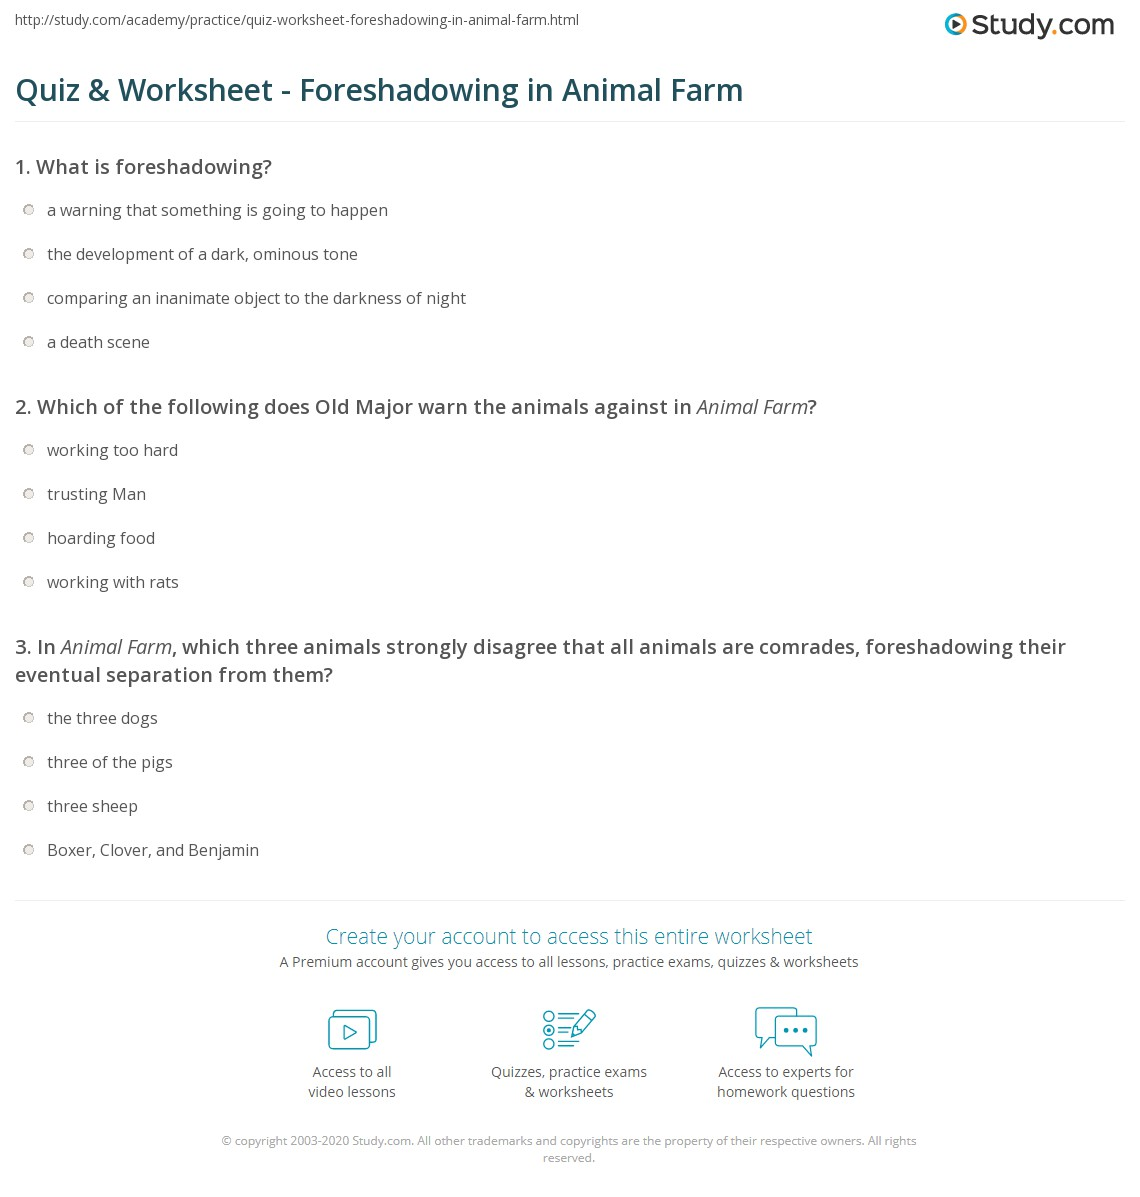 Quiz Worksheet Foreshadowing in Animal Farm – Foreshadowing Worksheet